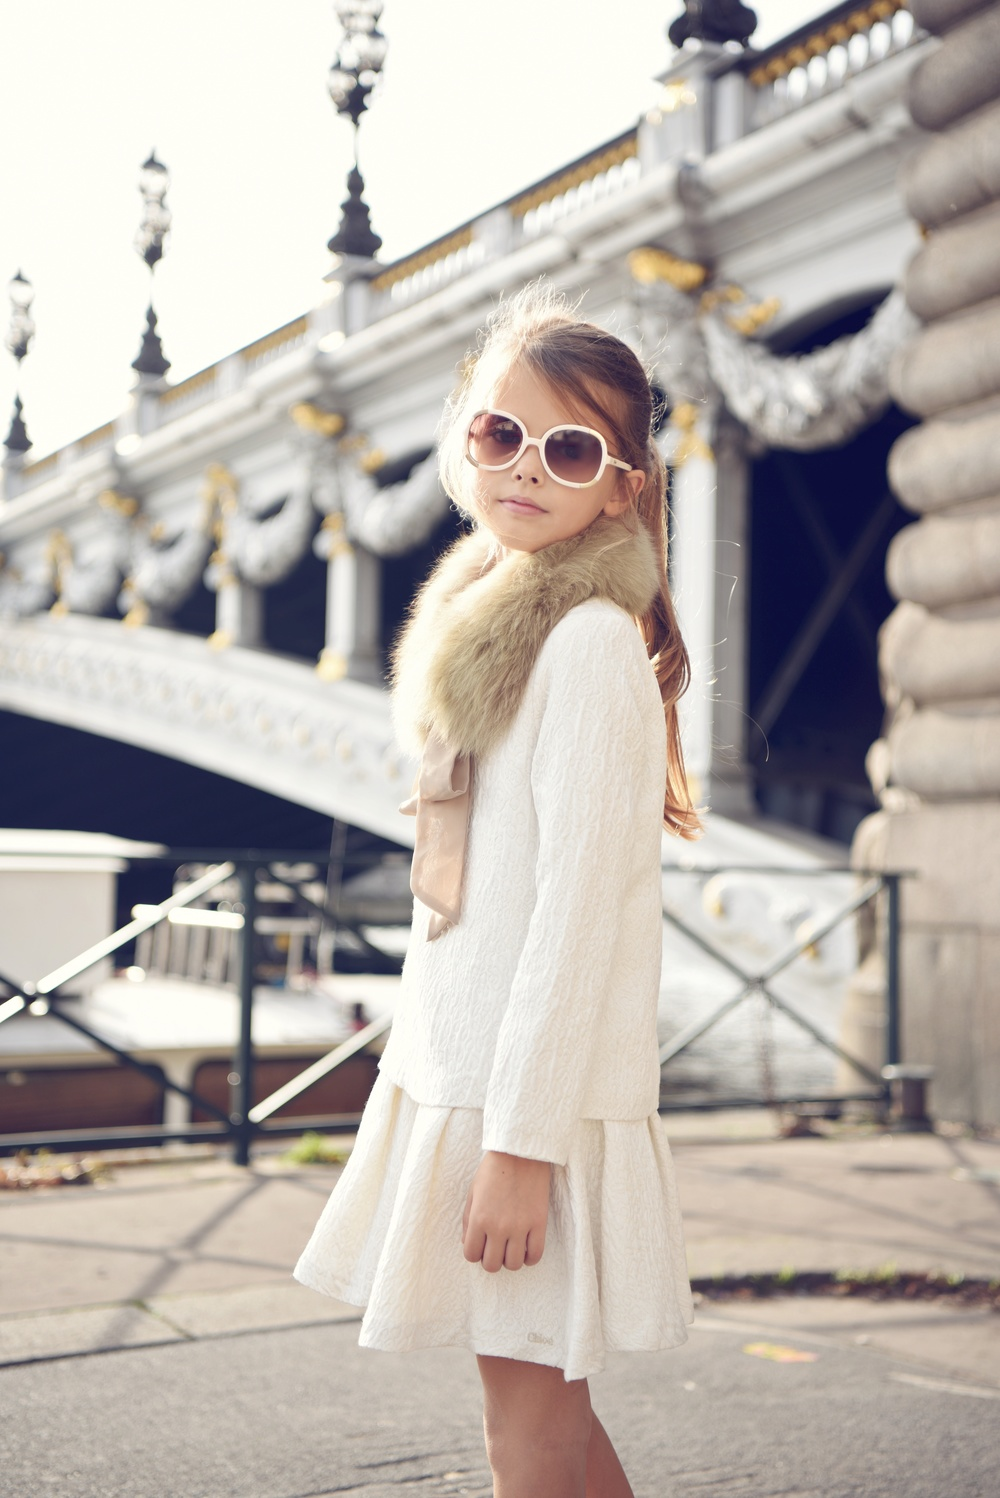 Enfant Street Style by Gina Kim Photography Chloe kids